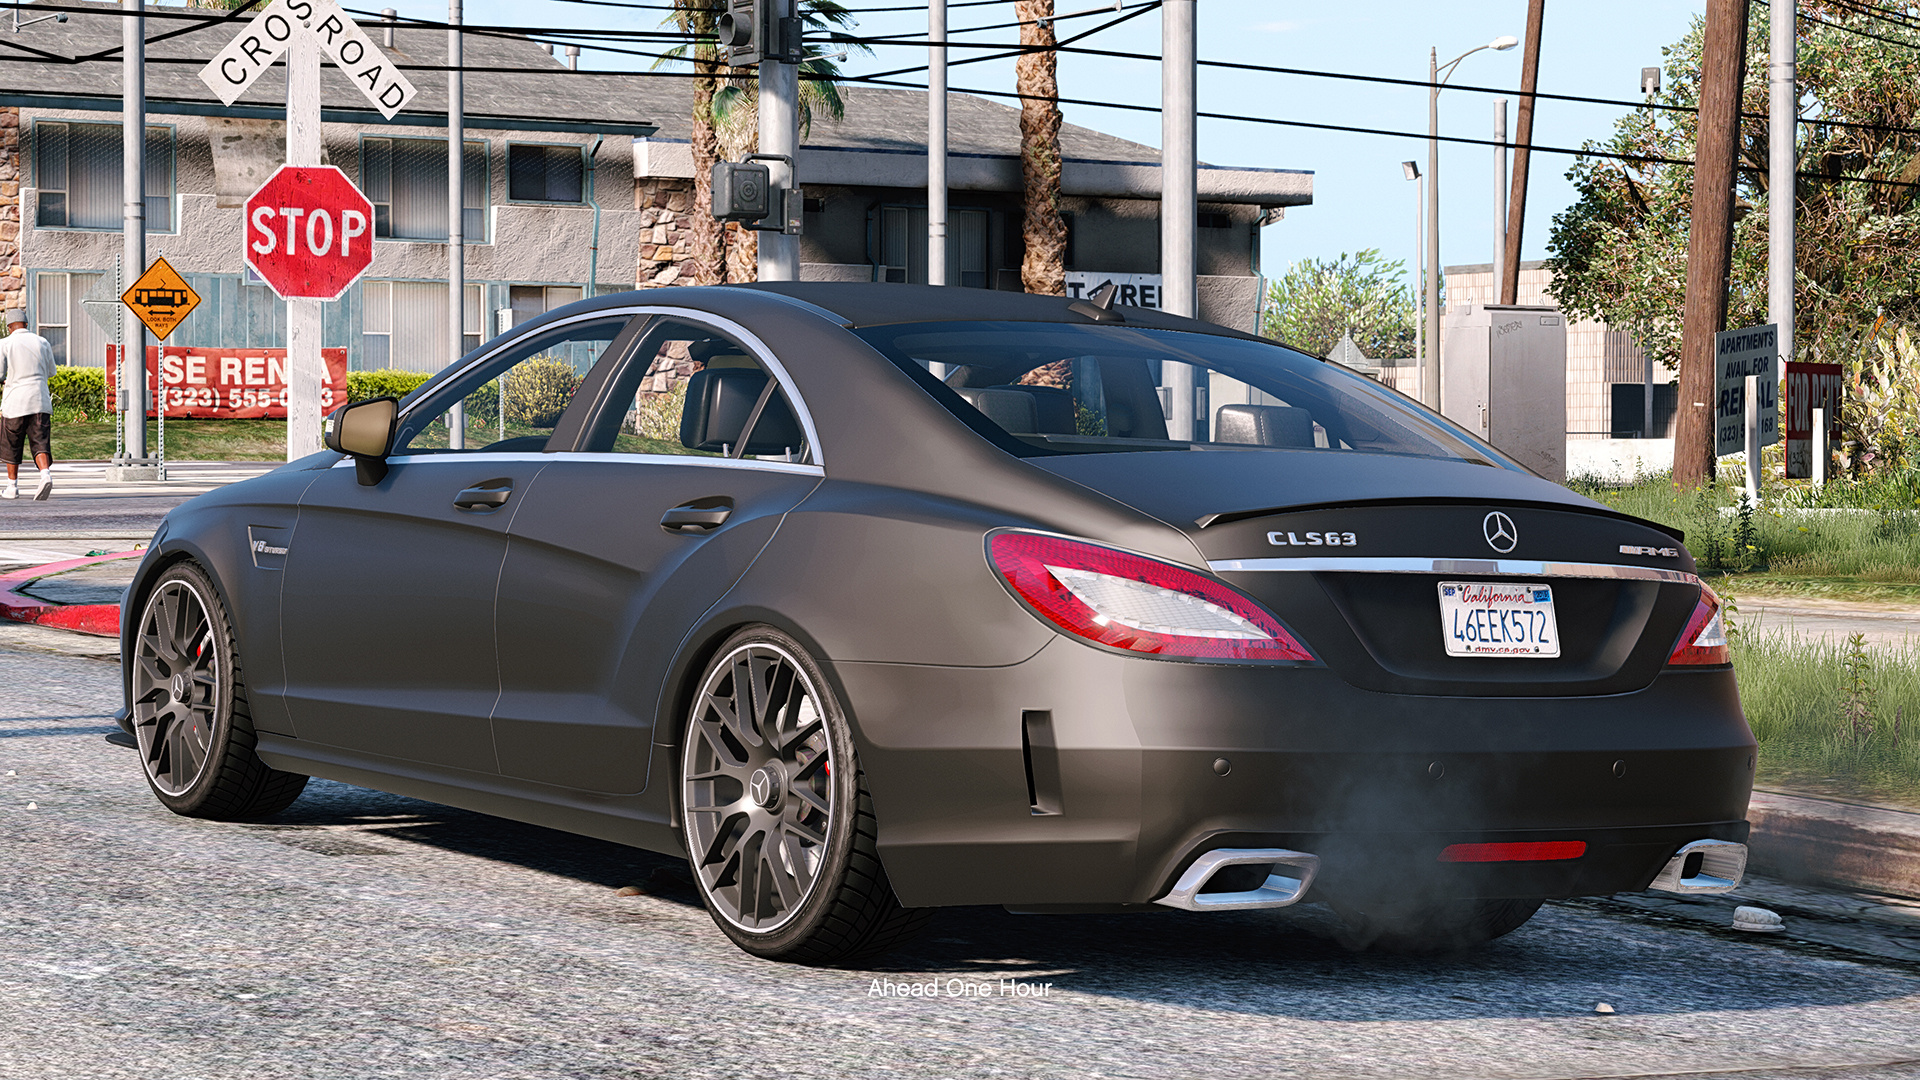 Mercedes Benz Cls 6 3 Amg Add On Gta5 Mods Com